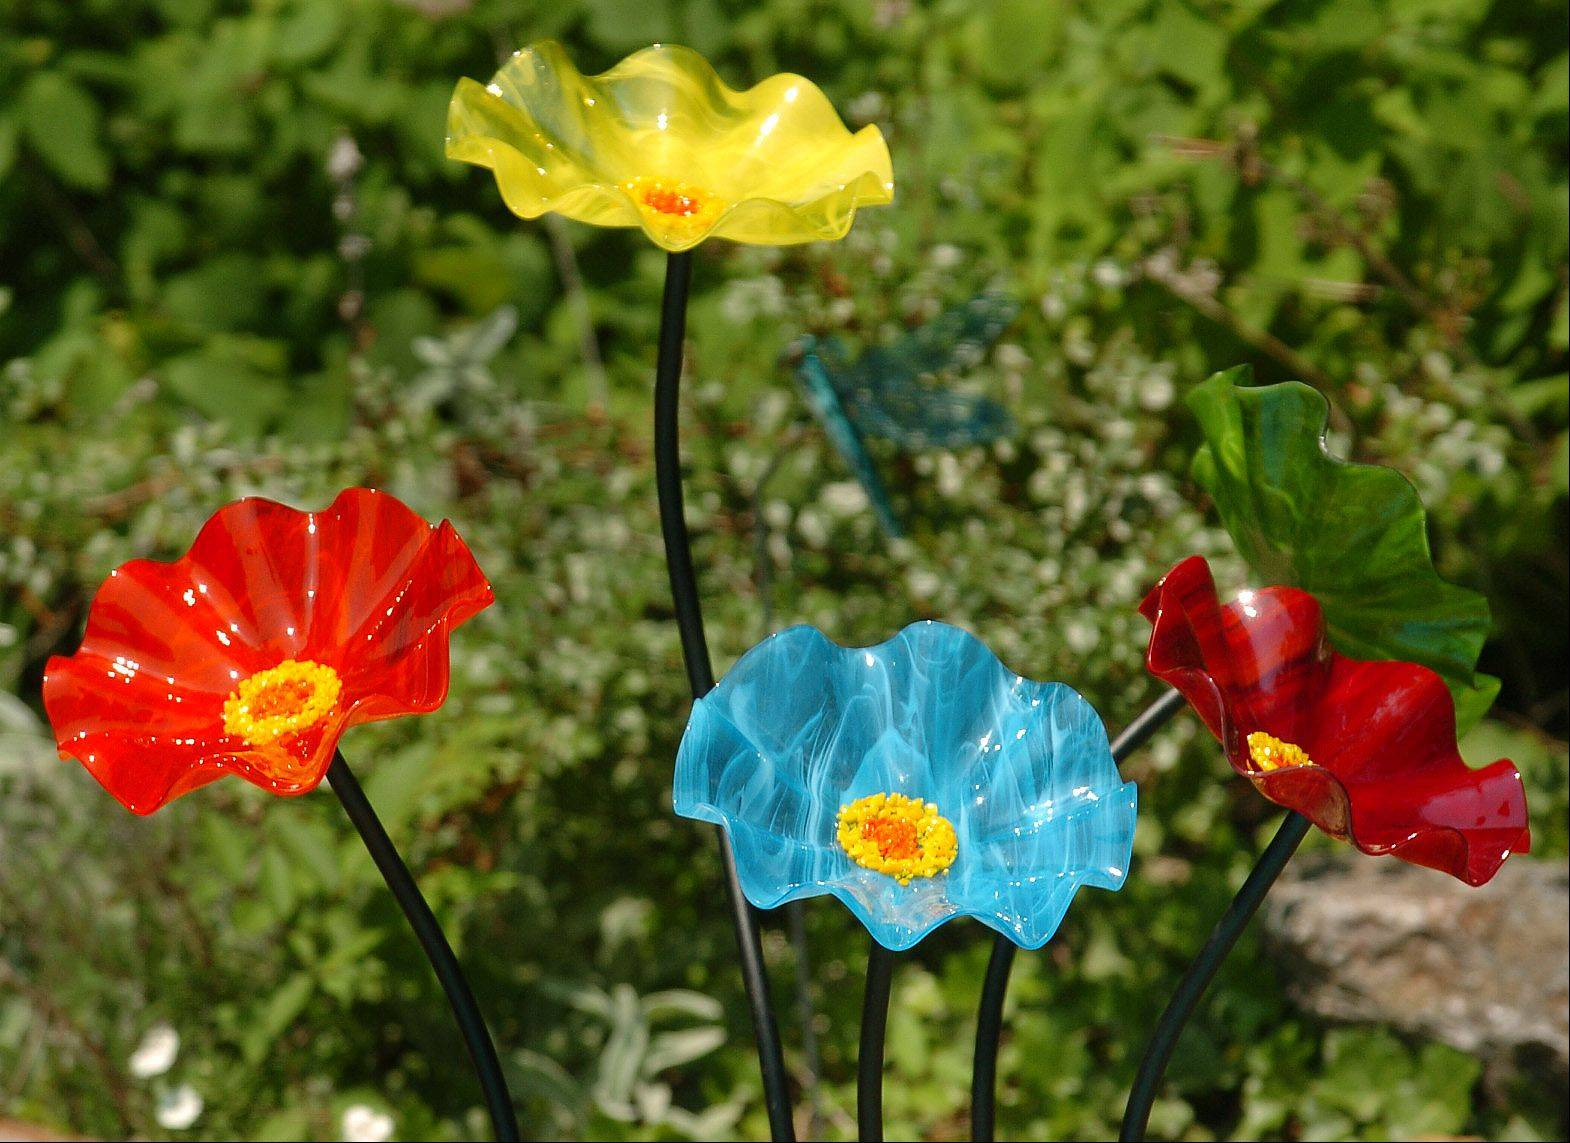 Amy Amdur uses a few brightly colored sculptures in her back yard, including these flowers.